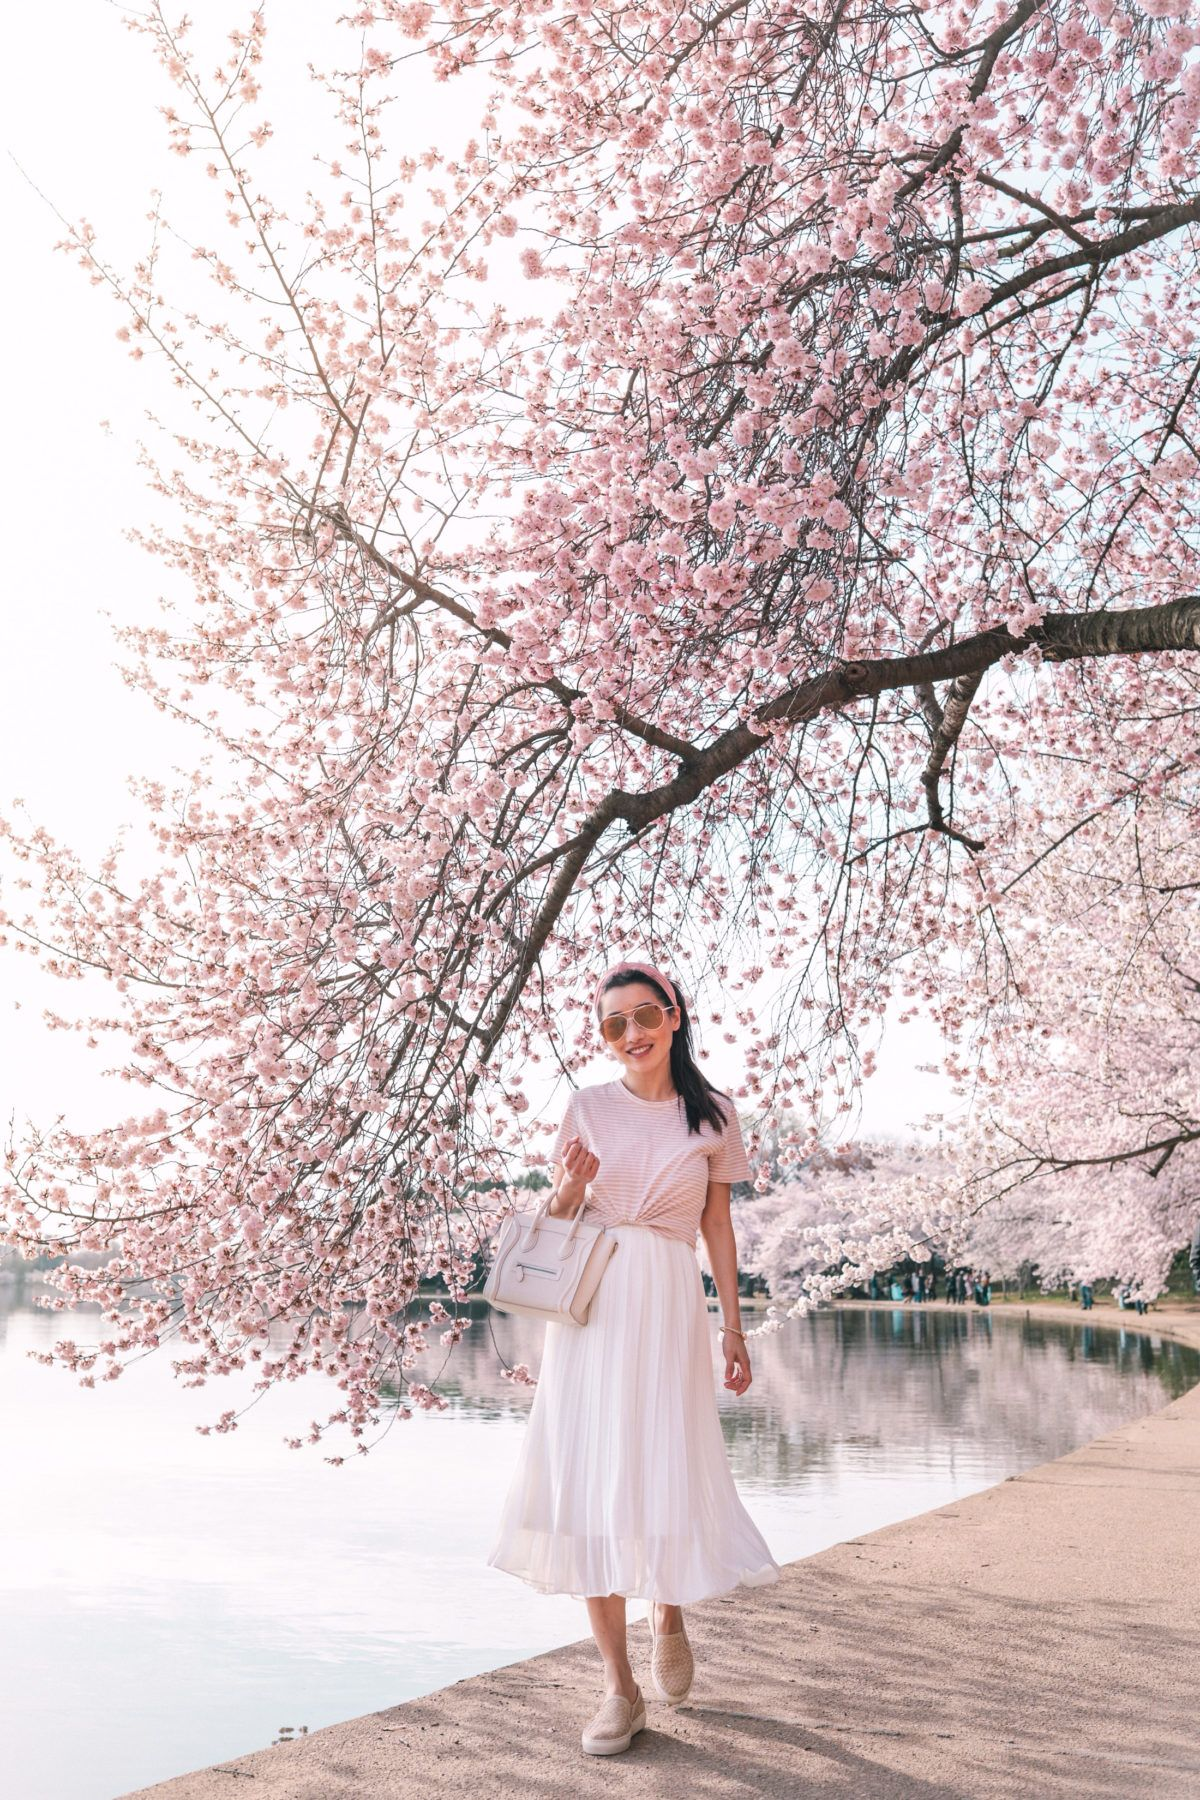 M Gemi Cerchio Leather Sneakers Outfit At Washington Dc Cherry Blossoms Cherry Blossom Outfit Stylish Travel Outfit Korean Spring Outfits